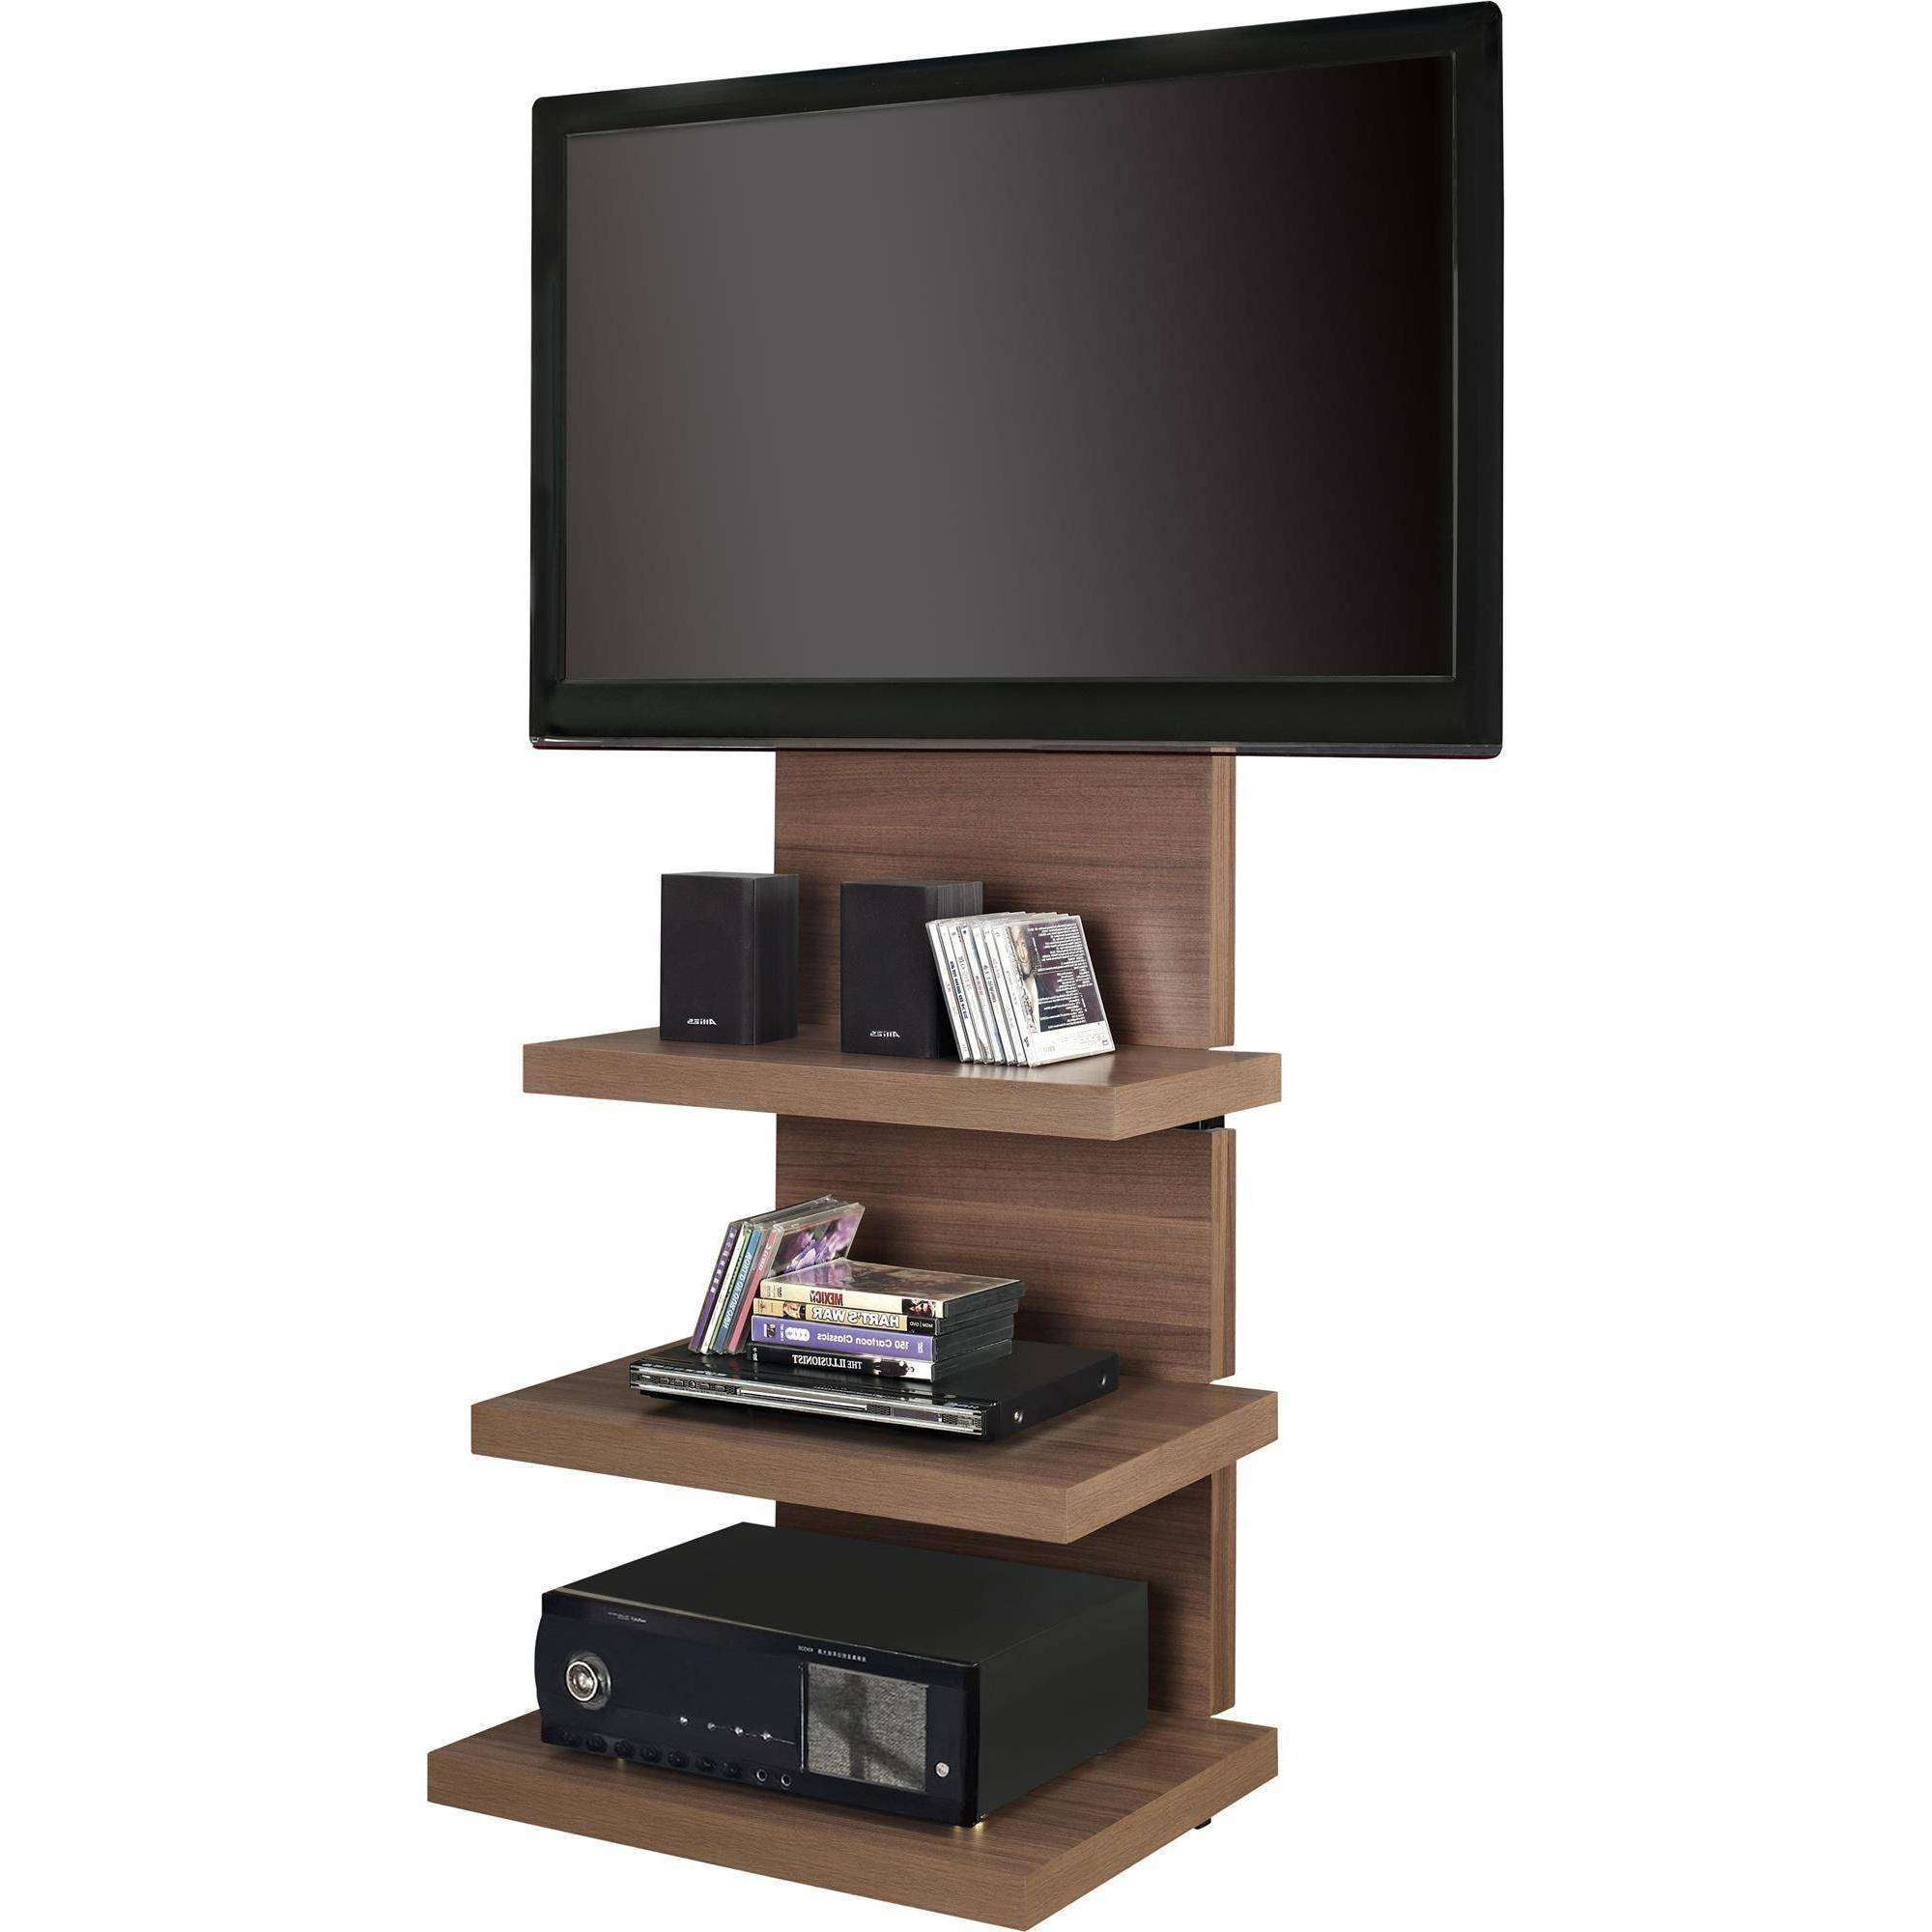 Ameriwood Home Elevation Altramount Tv Stand For Tvs Up To 60 Inside Tv Stands For 70 Inch Tvs (View 4 of 15)